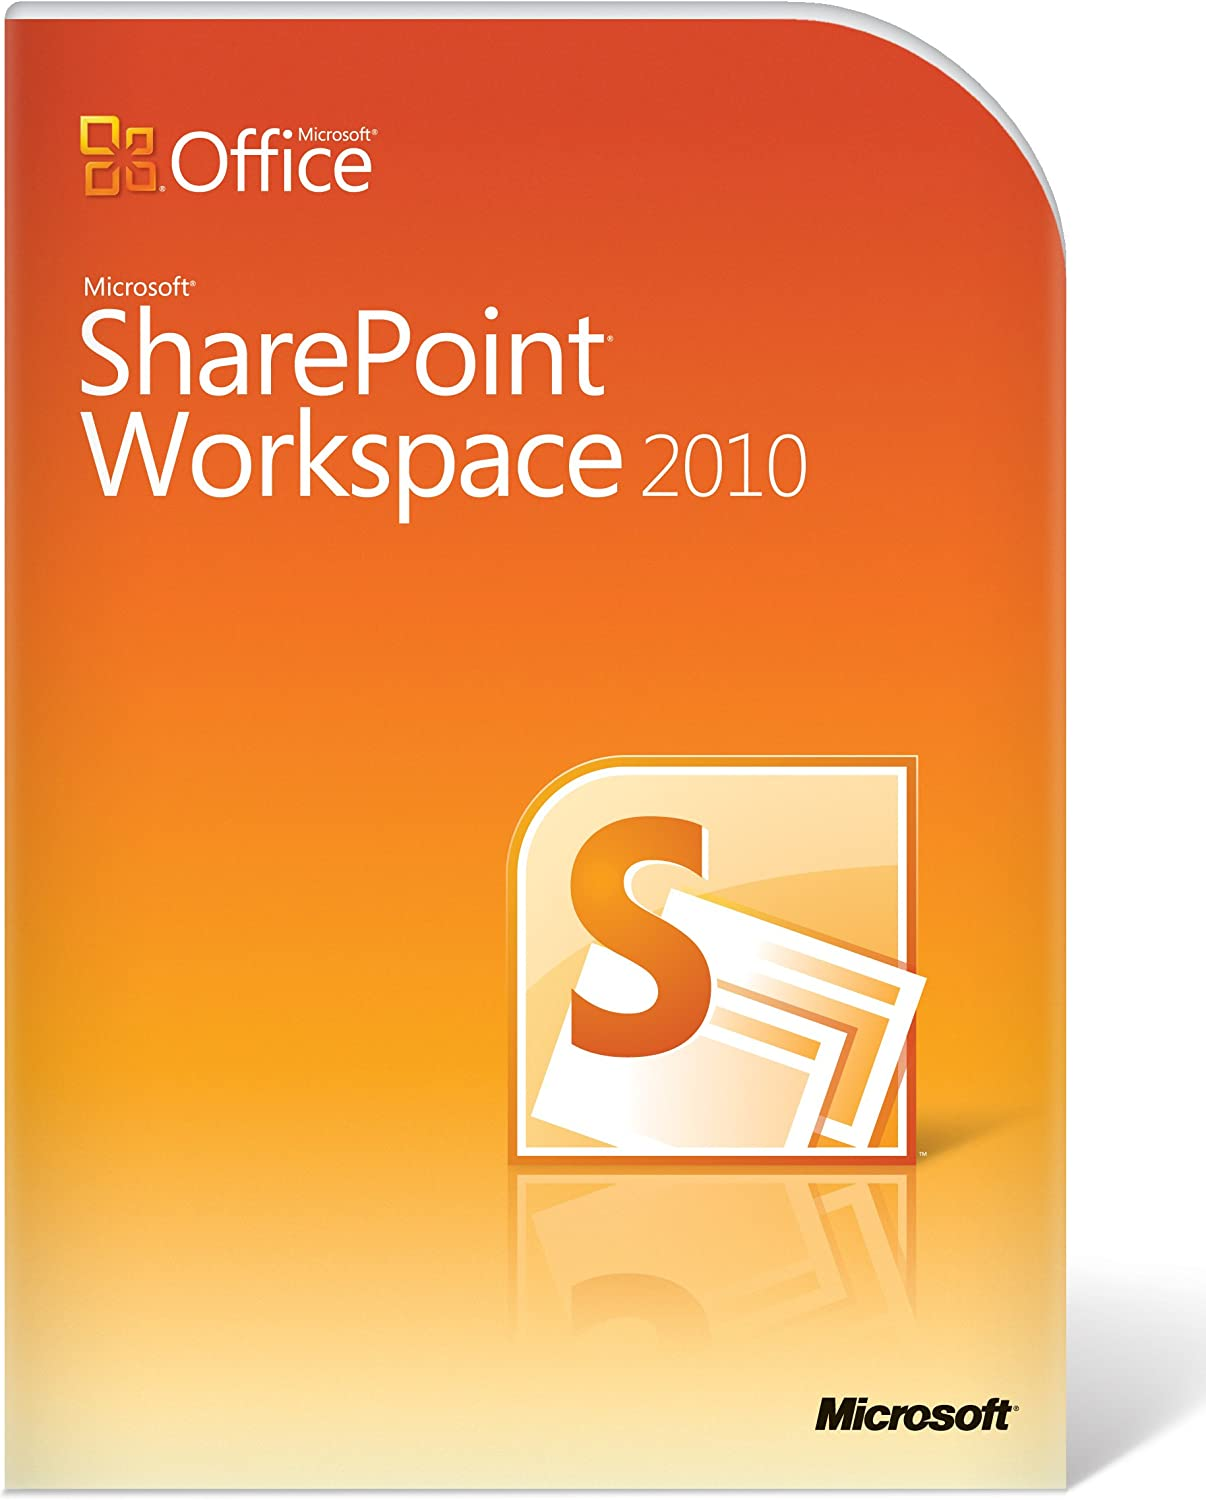 Where To Buy Ms Office Sharepoint Workspace 2010